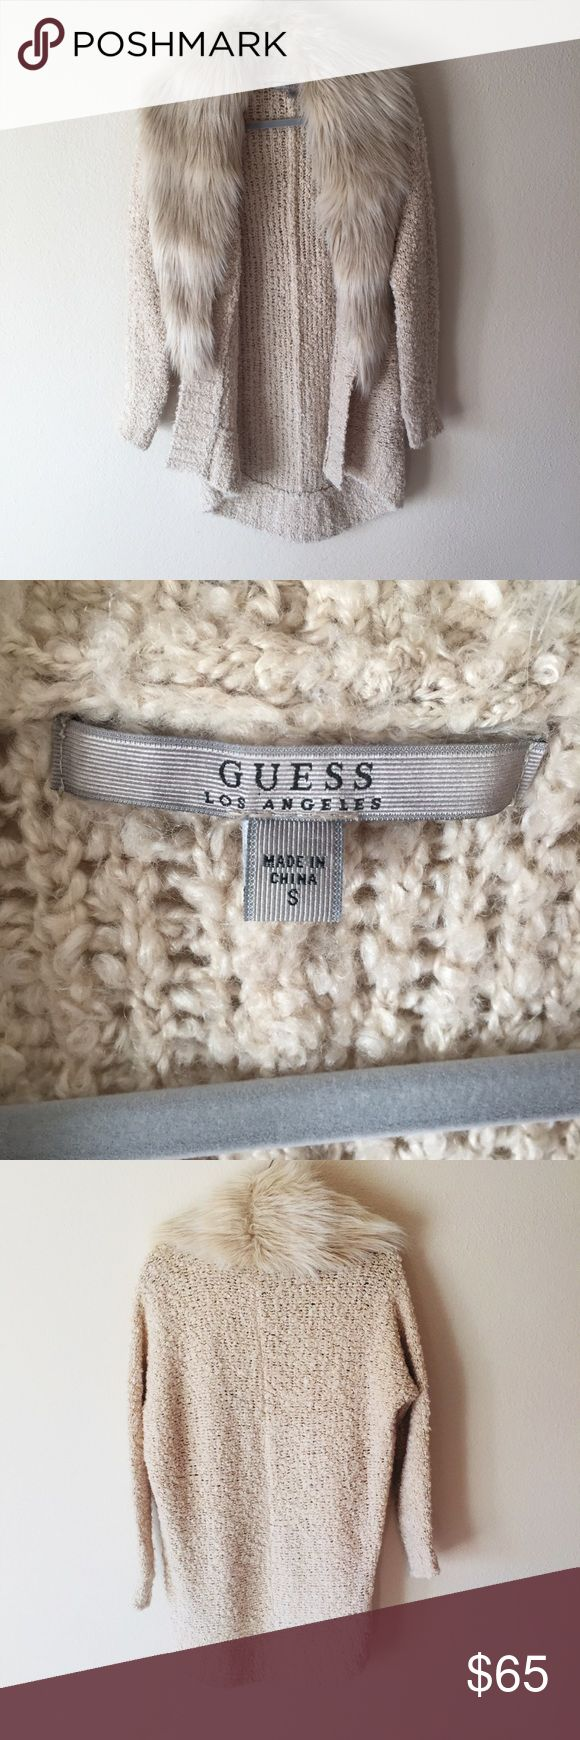 Guess women's size small beige sweater w/ faux fur Guess women's size small beige/cream color sweater w/ faux fur attachment. Hand wash cold. Very comfortable and cozy sweater. Love the button faux fur attachment- can dress if up or down! Guess Sweaters Cardigans